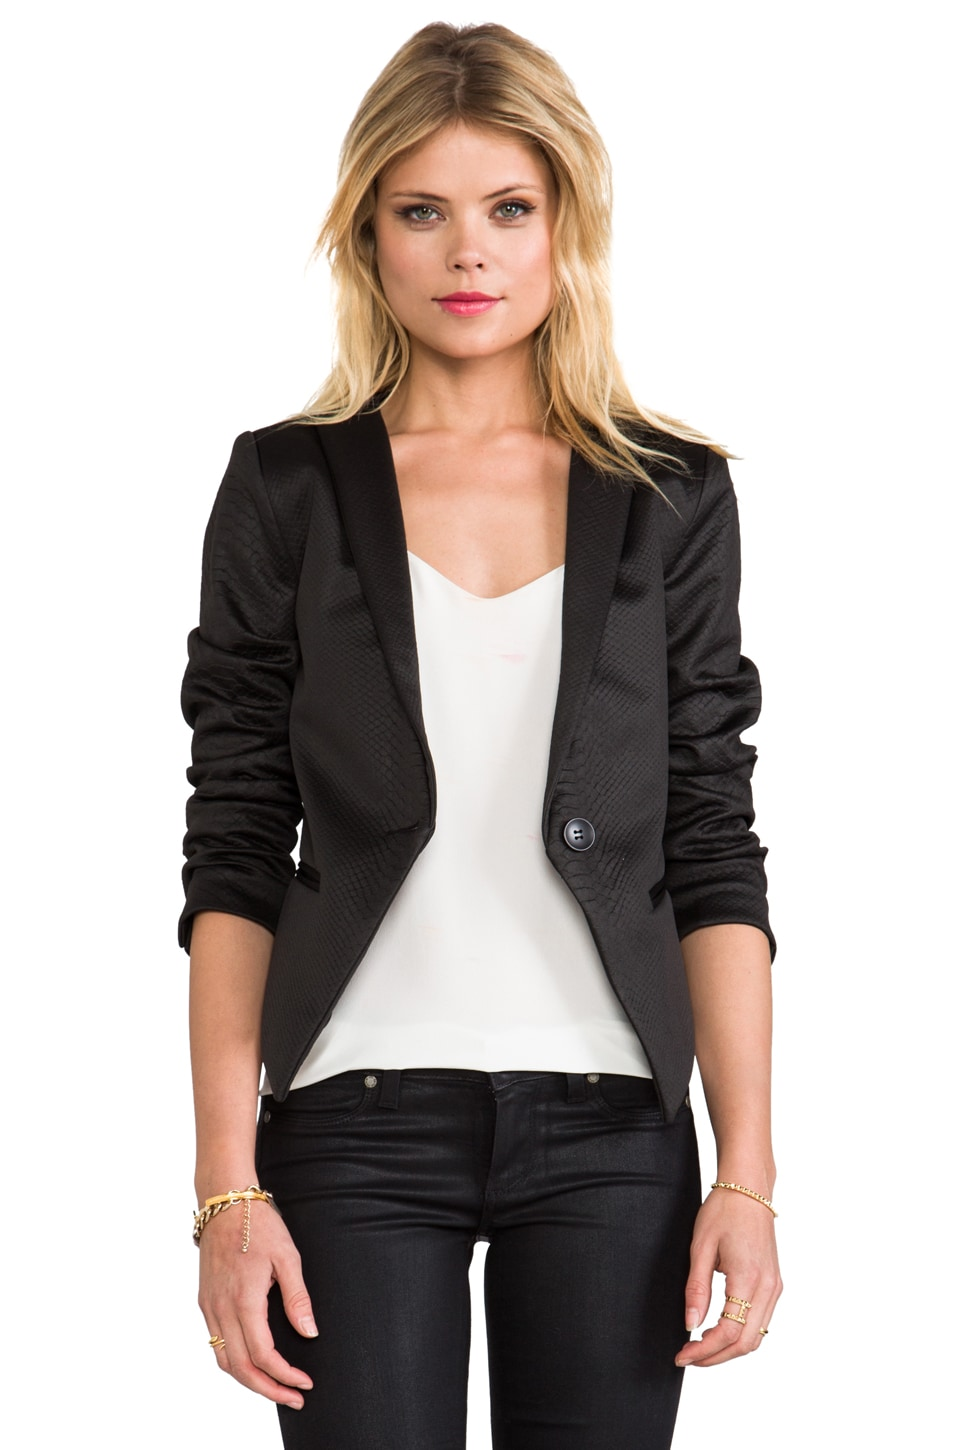 Capulet Cropped Blazer with Bolero Back in Black